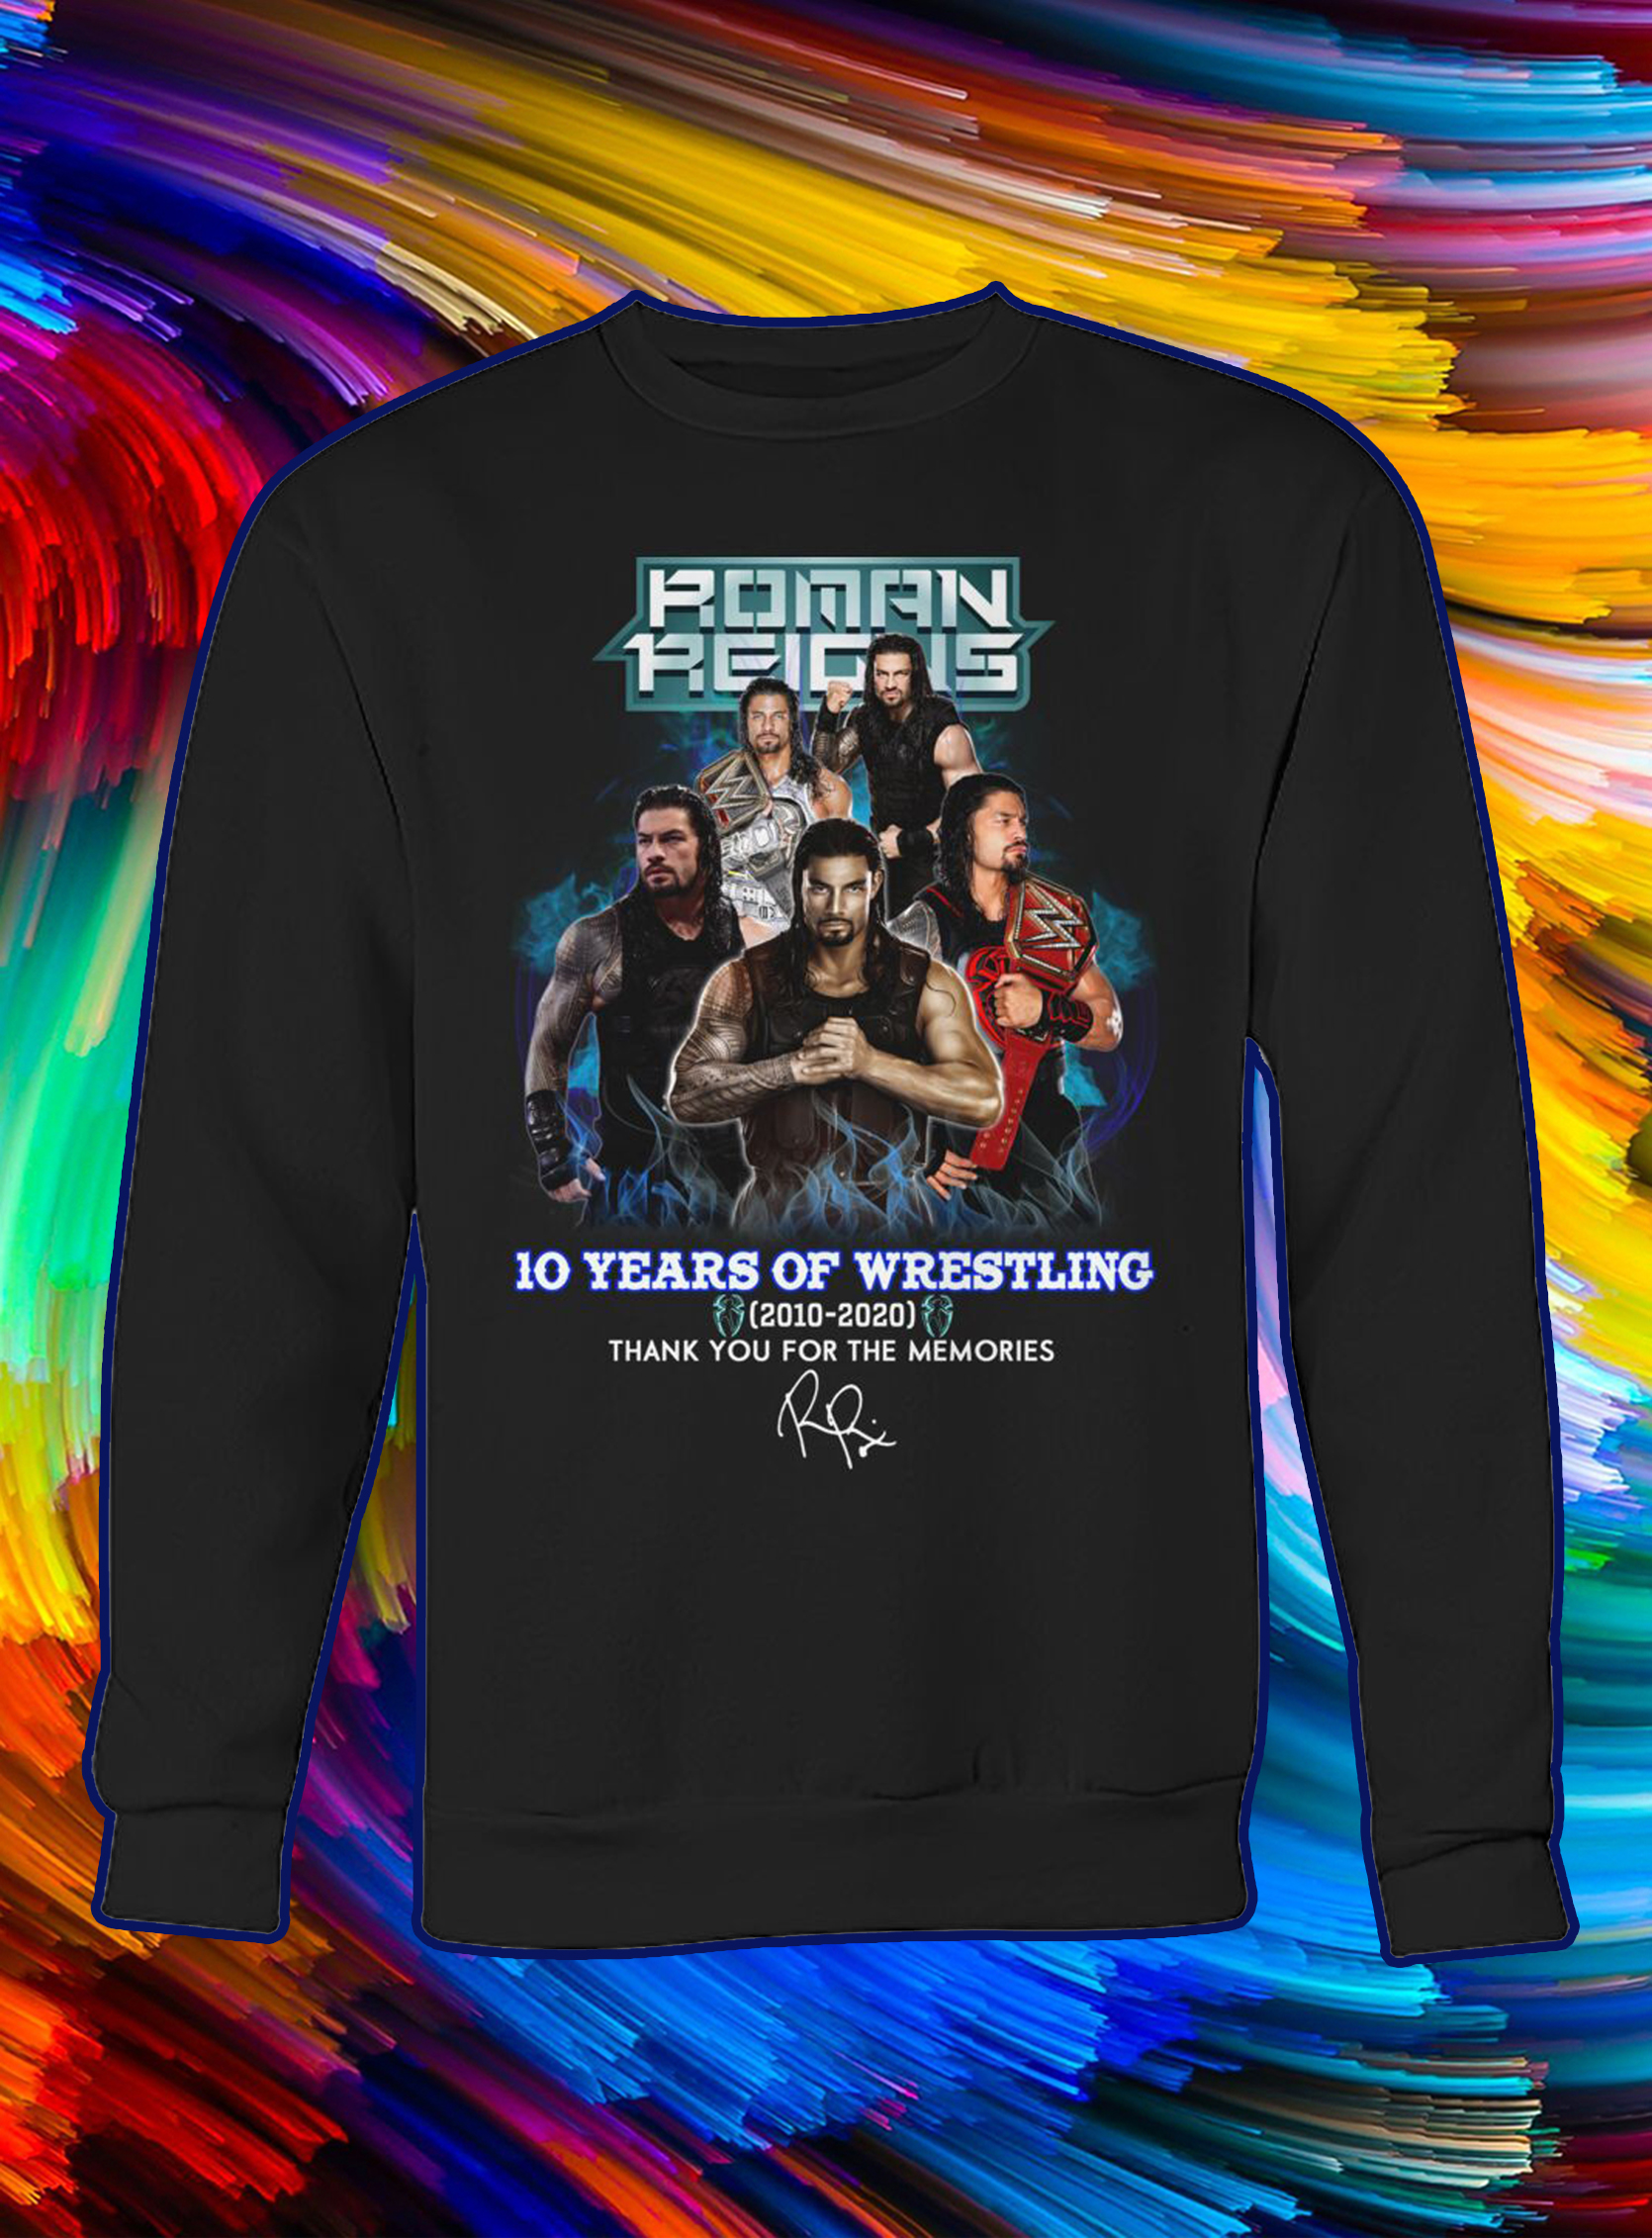 Roman reigns 10 years of wrestling thank you for the memories sweatshirt